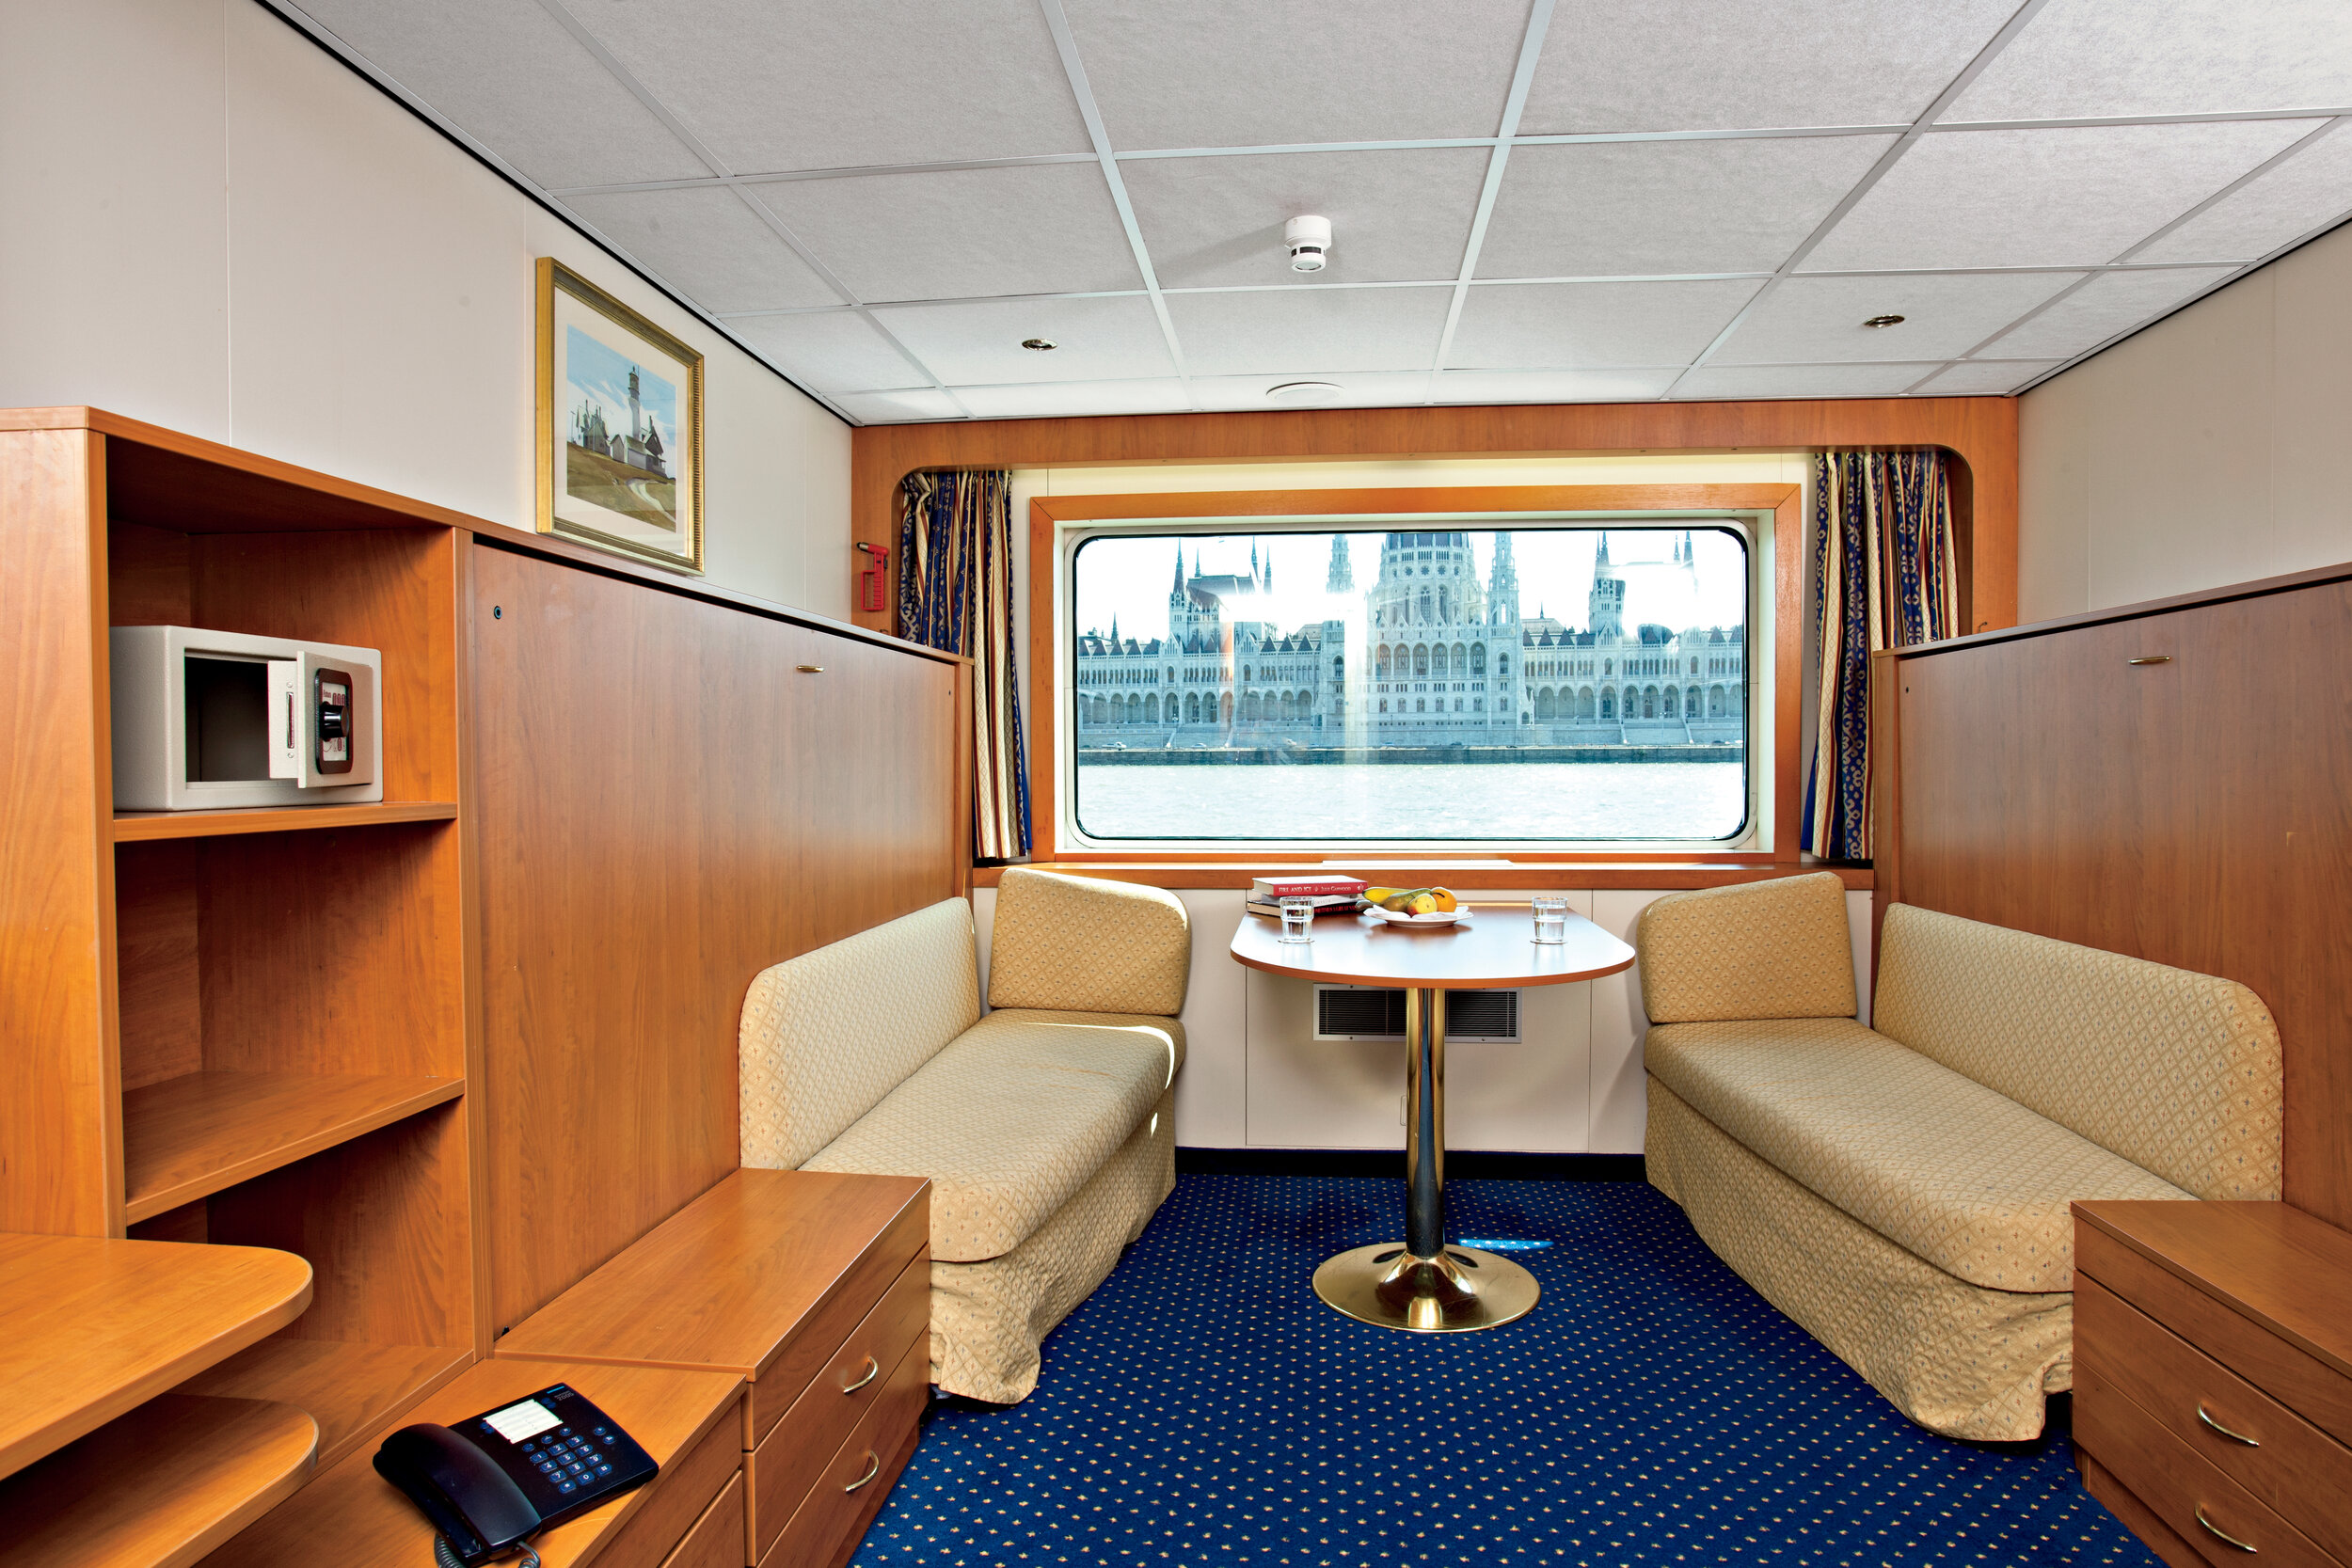 A typical stateroom